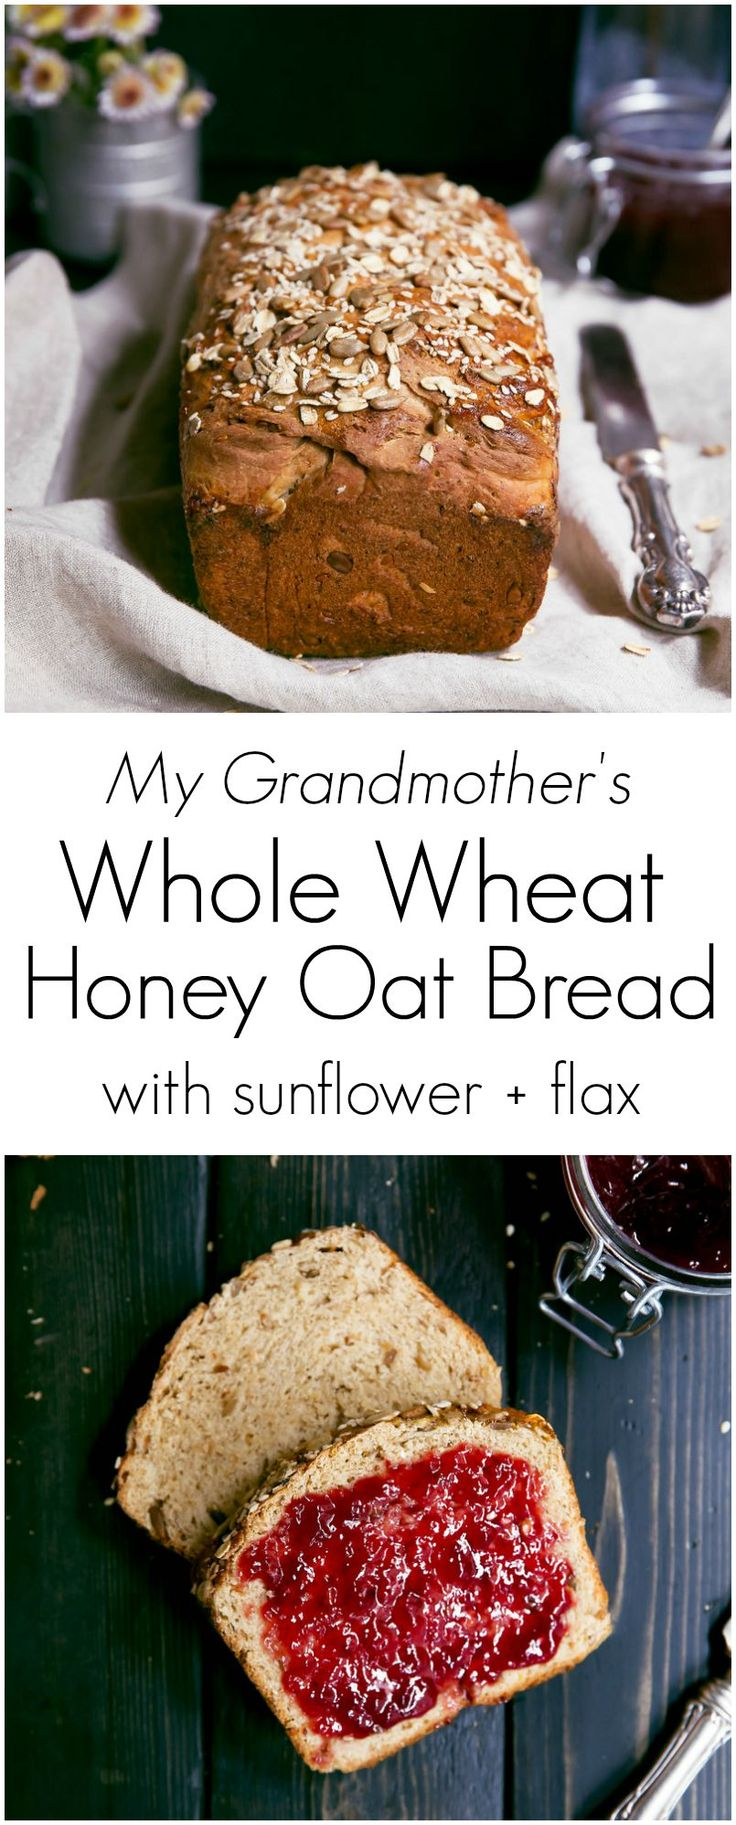 My Grandmother's homemade Honey Oat Bread made with whole wheat flour, sunflower seeds, honey, oats and flax. Nutritious and wonderful toasted for breakfast.: